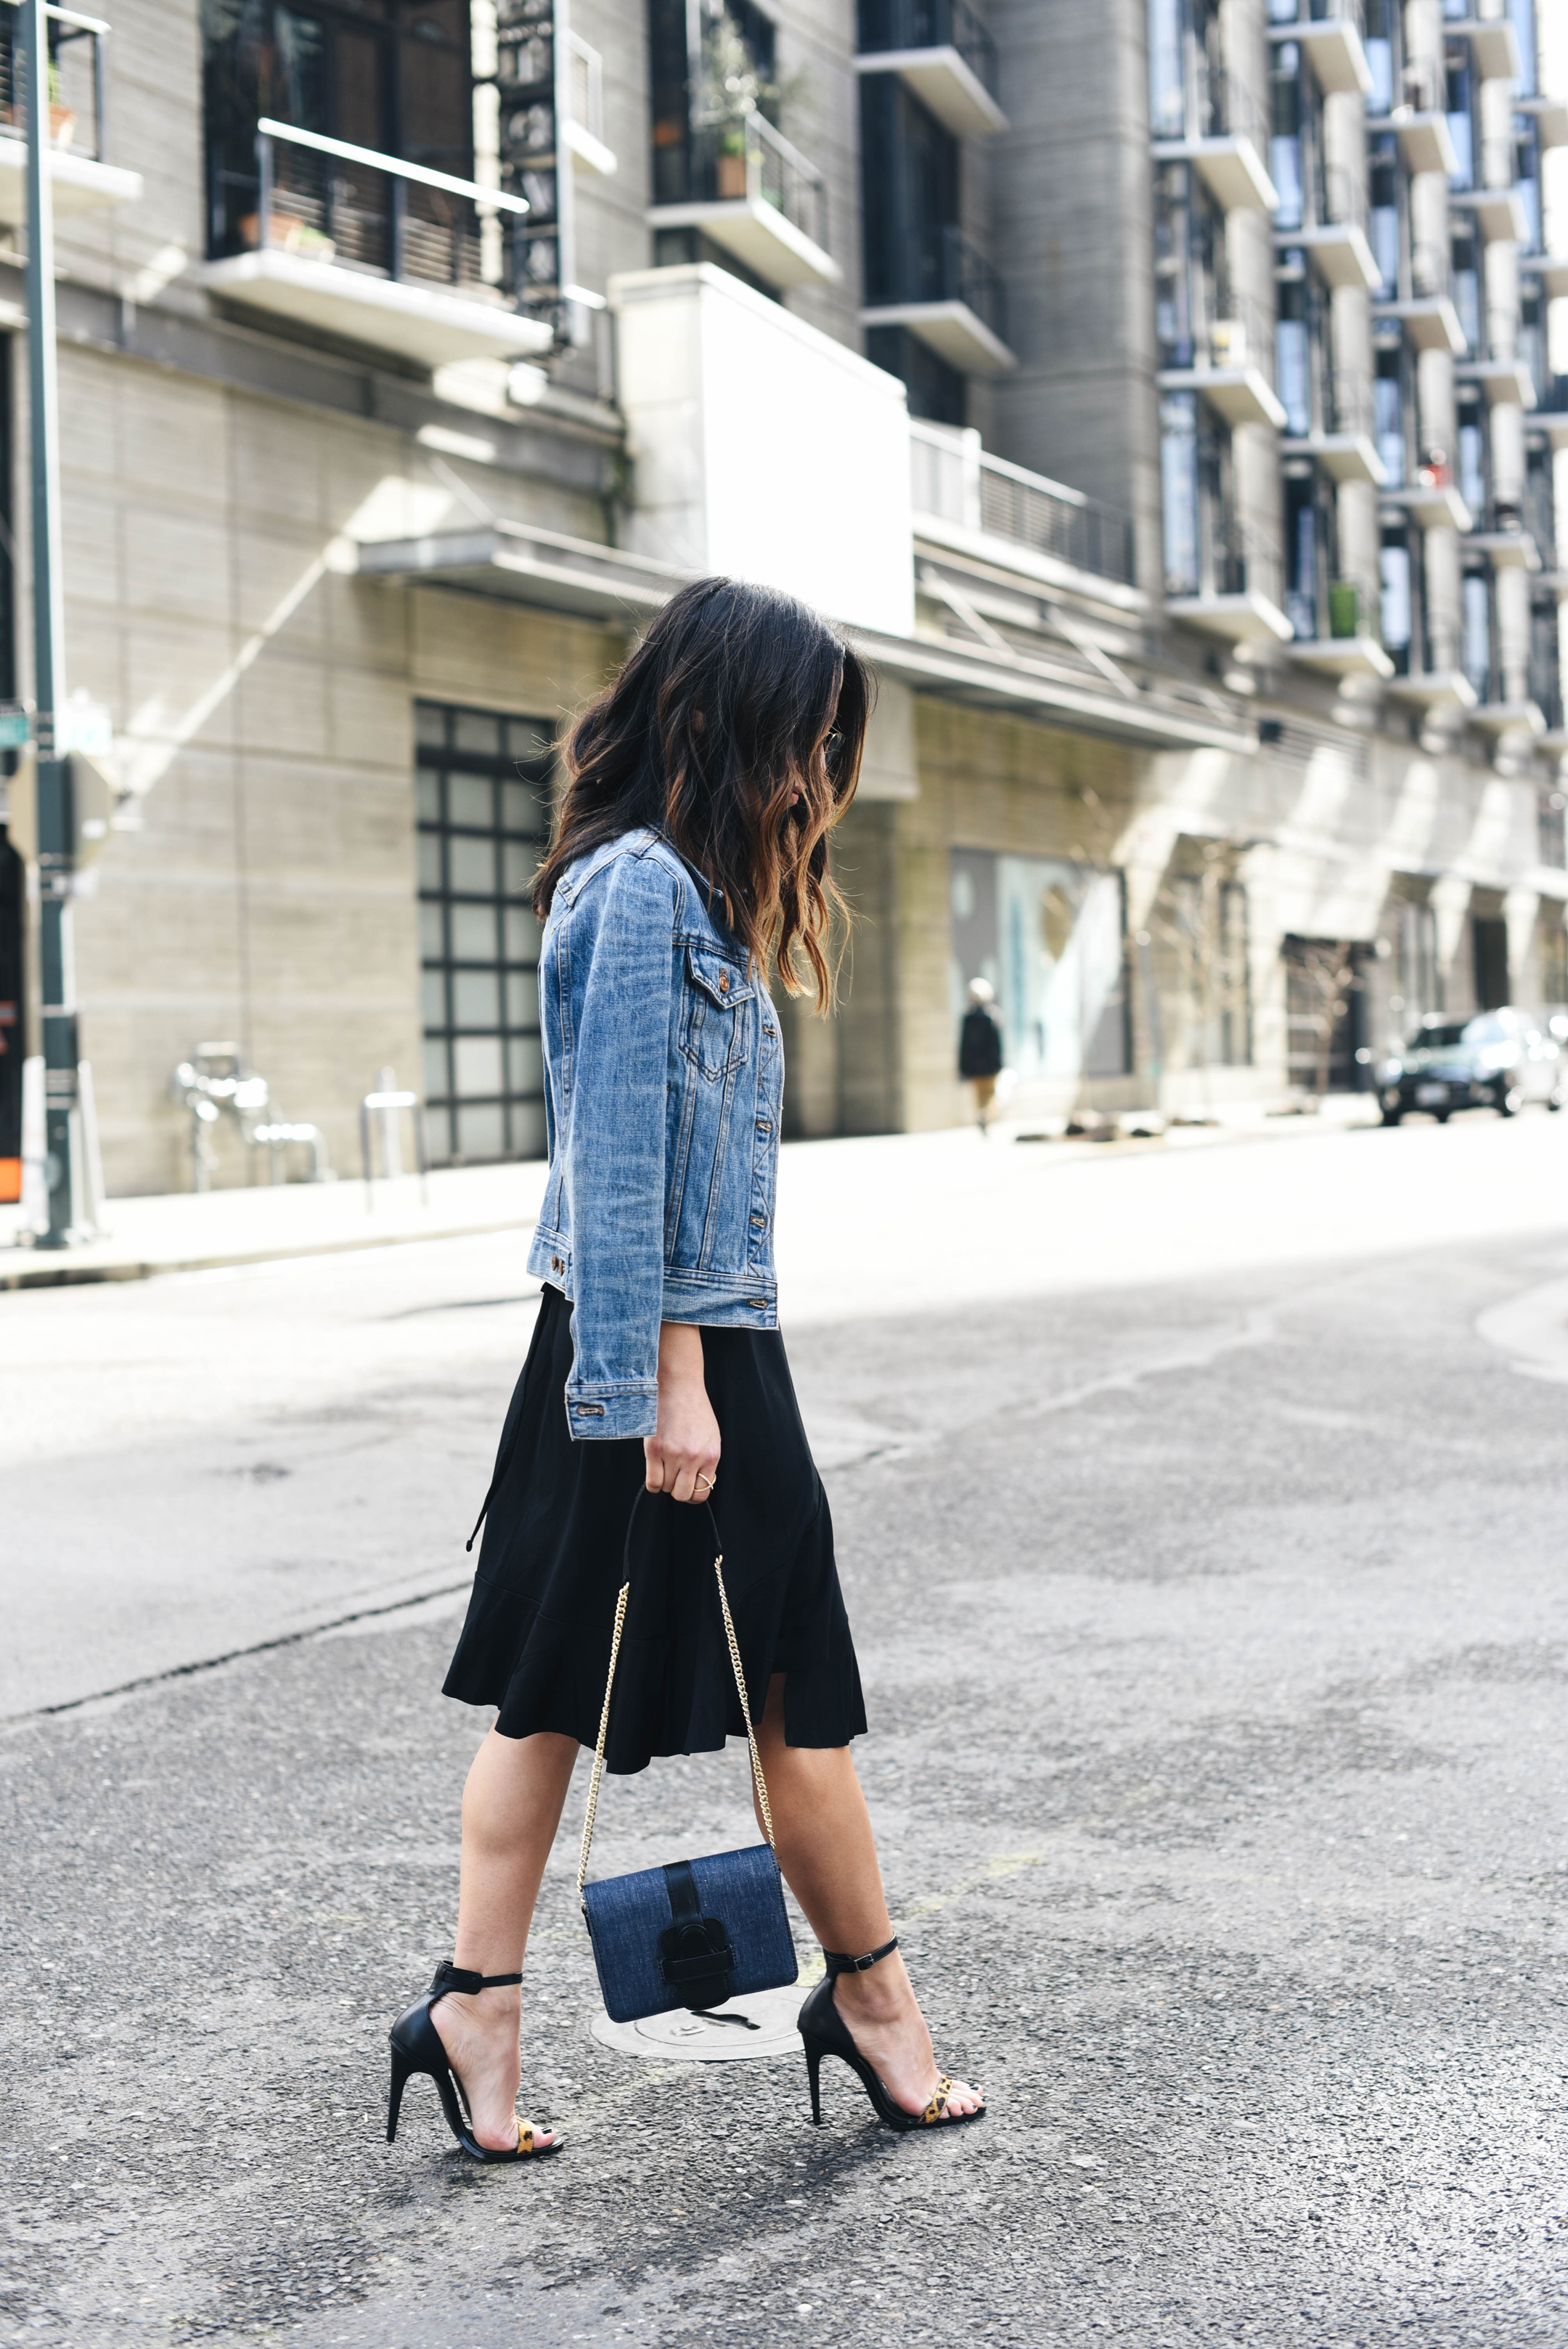 Transition your summer outfits with denim